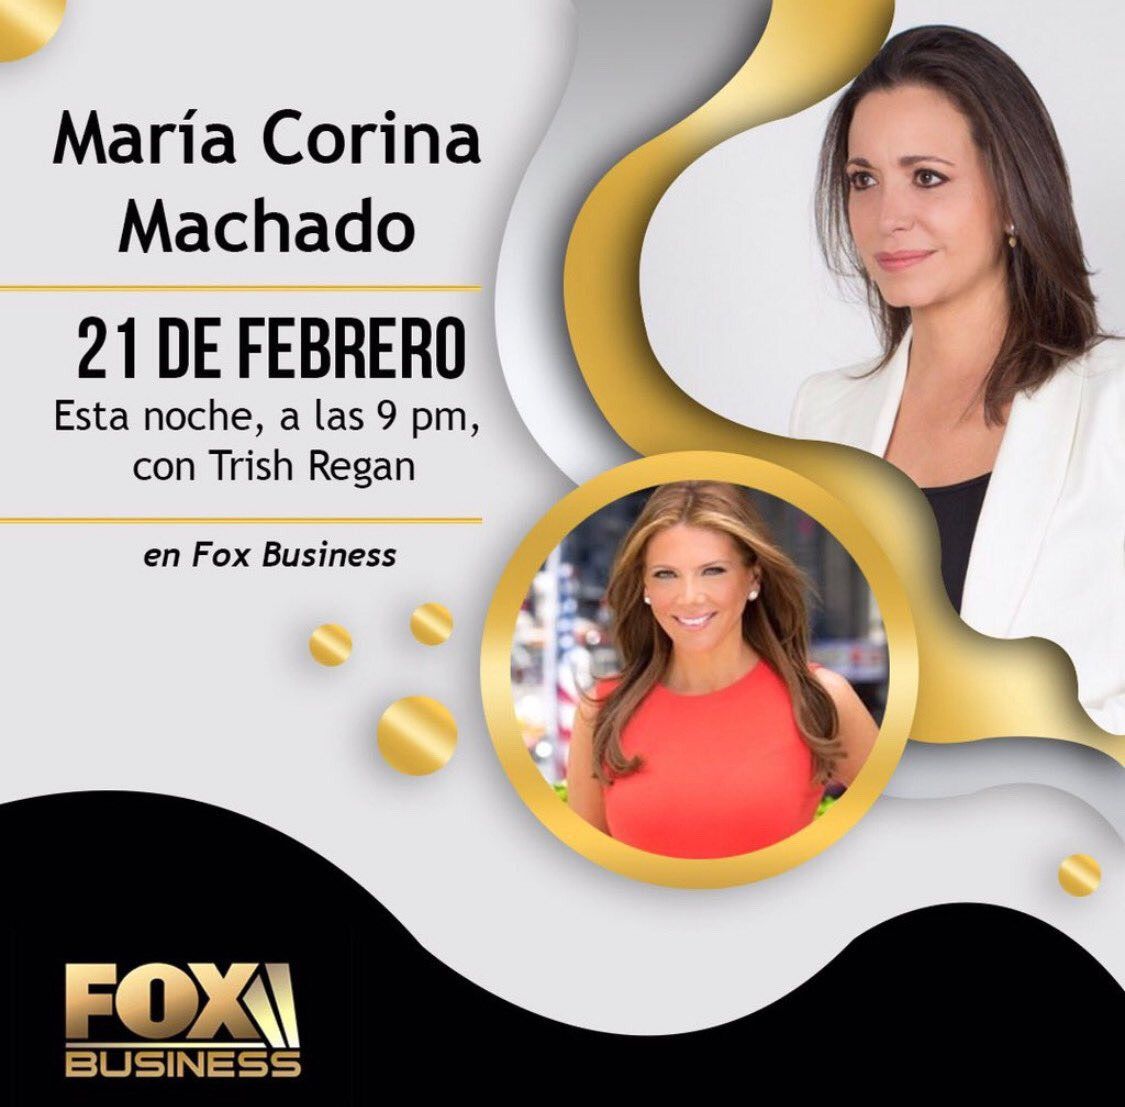 .@MariaCorinaYA is back with me tonight live from #Venezuela — hear how #Maduro is attempting to starve his people ...as well as new attempts to silence opposition leaders. TONIGHT 8pm #TrishRegan #FoxBusiness